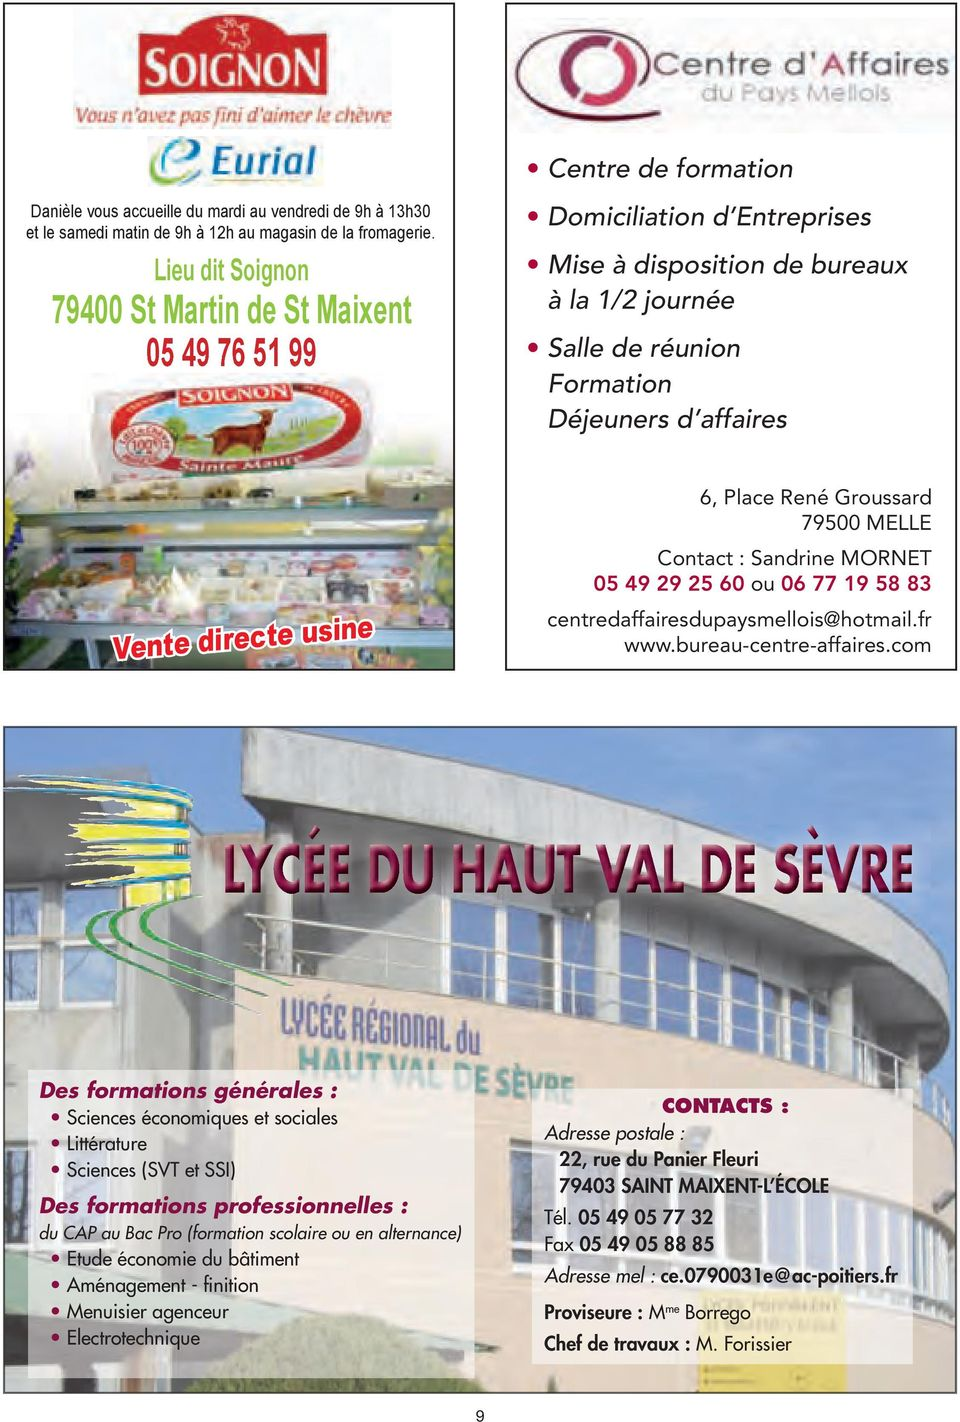 usine 6, Place René Groussard 79500 MELLE Contact : Sandrine MORNET 05 49 29 25 60 ou 06 77 19 58 83 centredaffairesdupaysmellois@hotmail.fr www.bureau-centre-affaires.